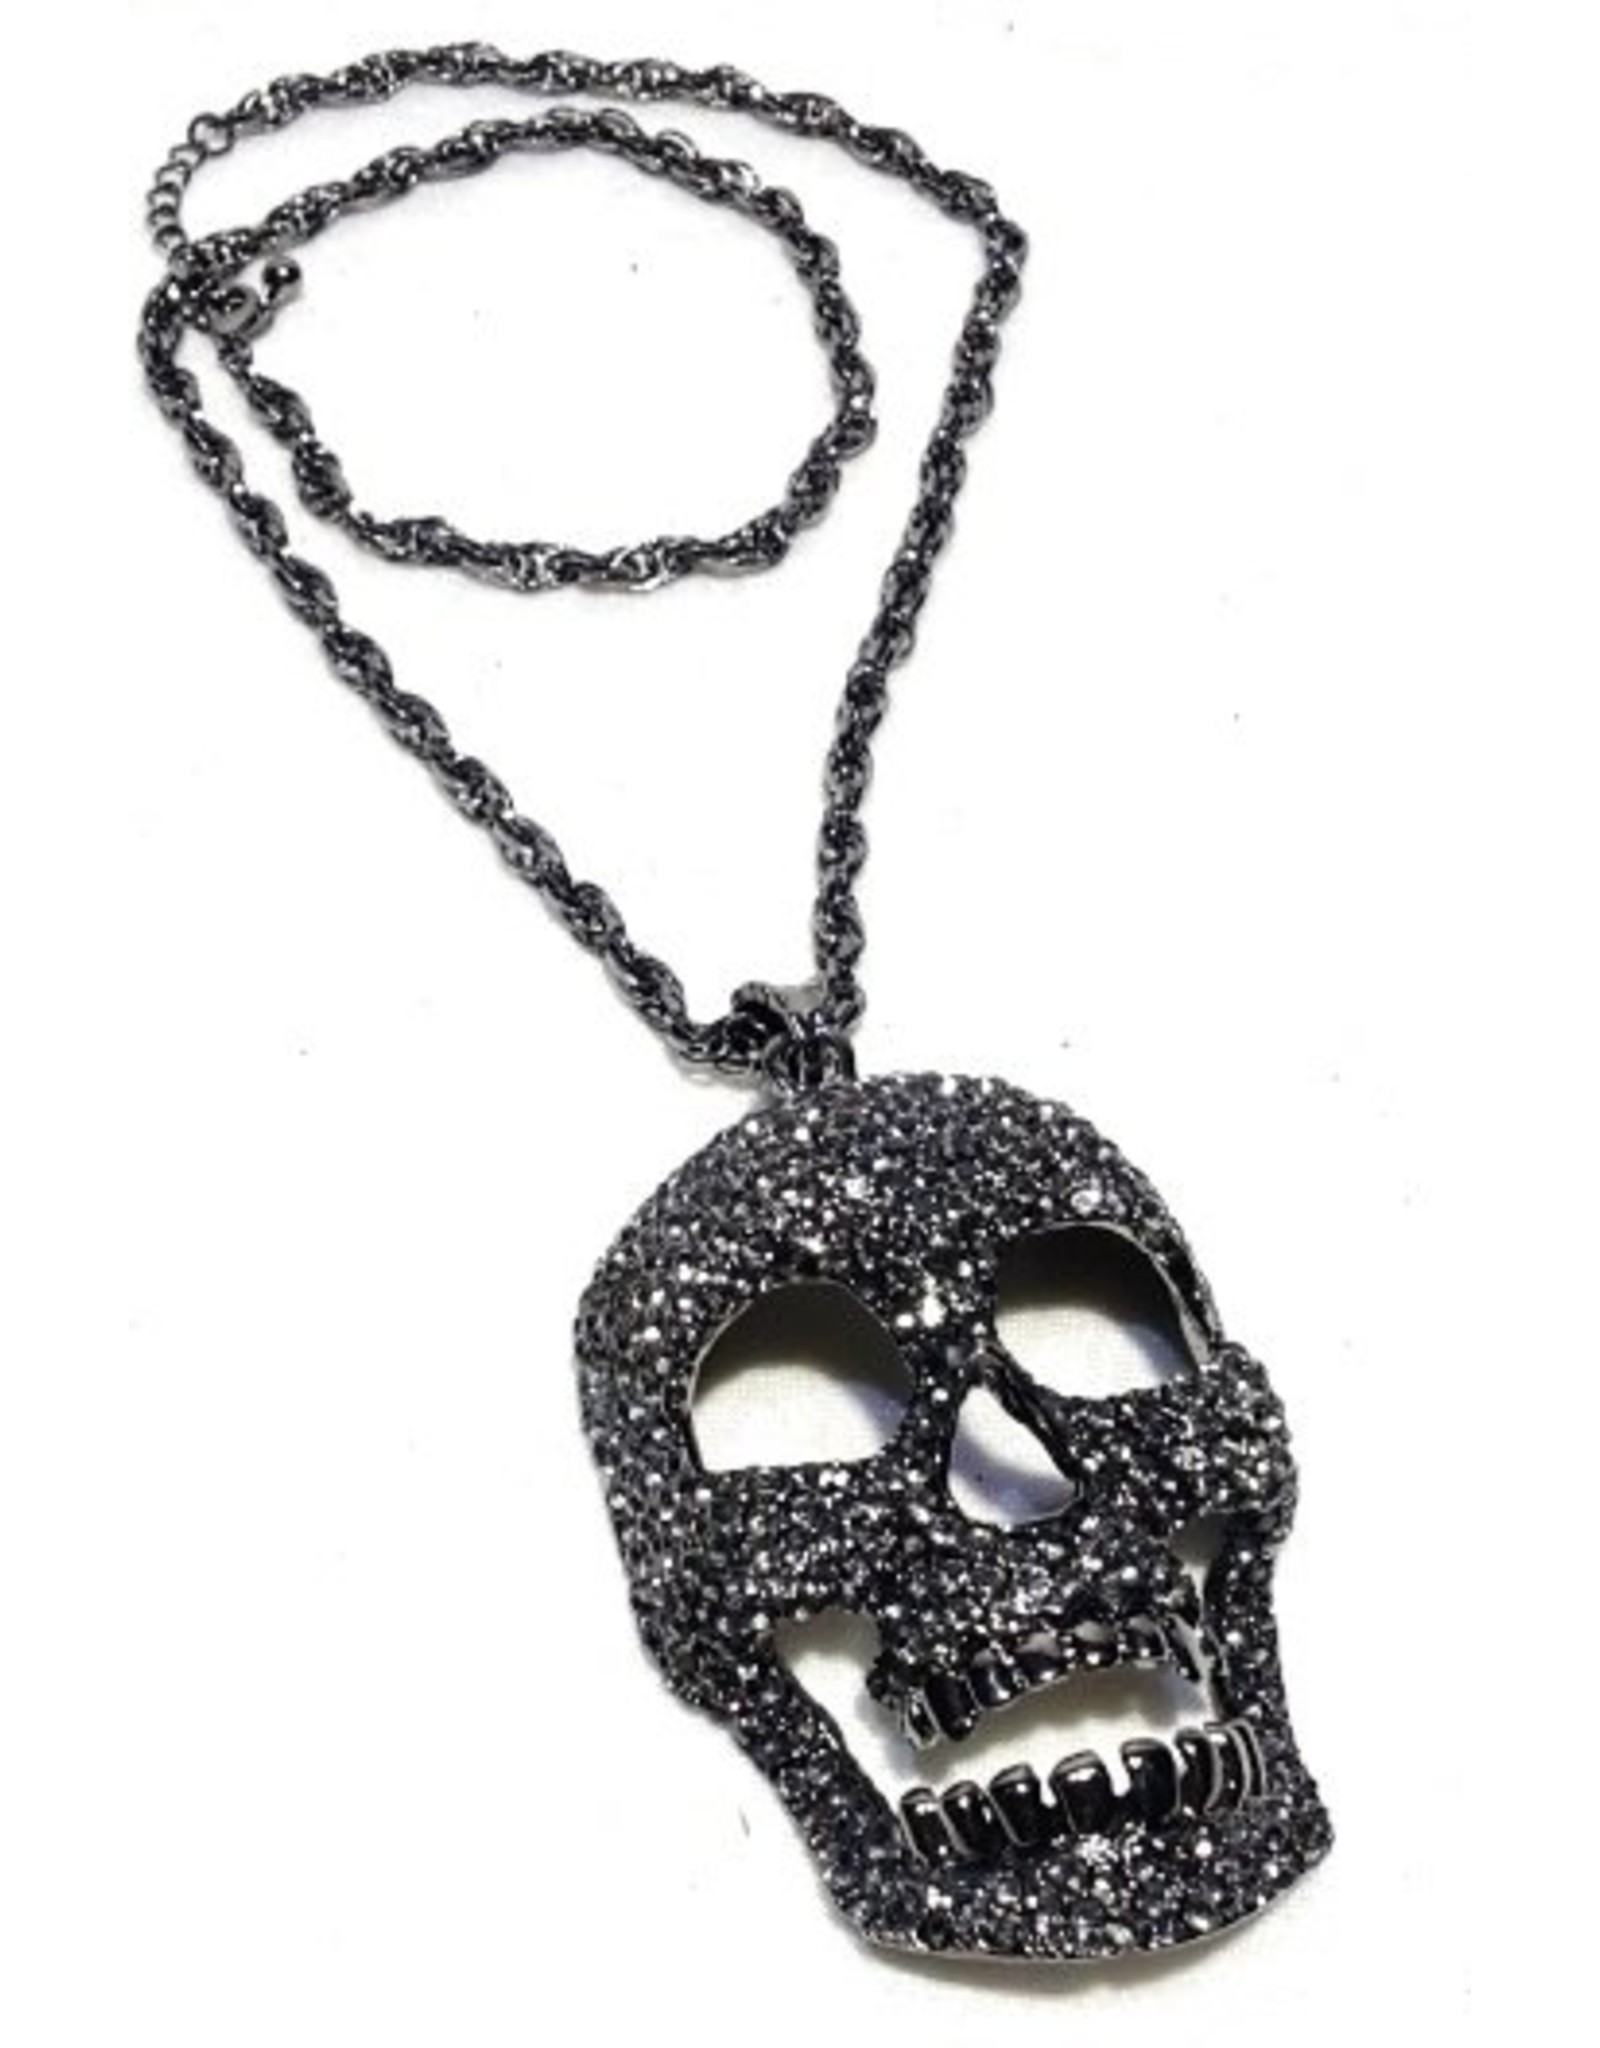 Dark Desire Gothic and Cult accessories -   Skull Necklace  - Large, 3D